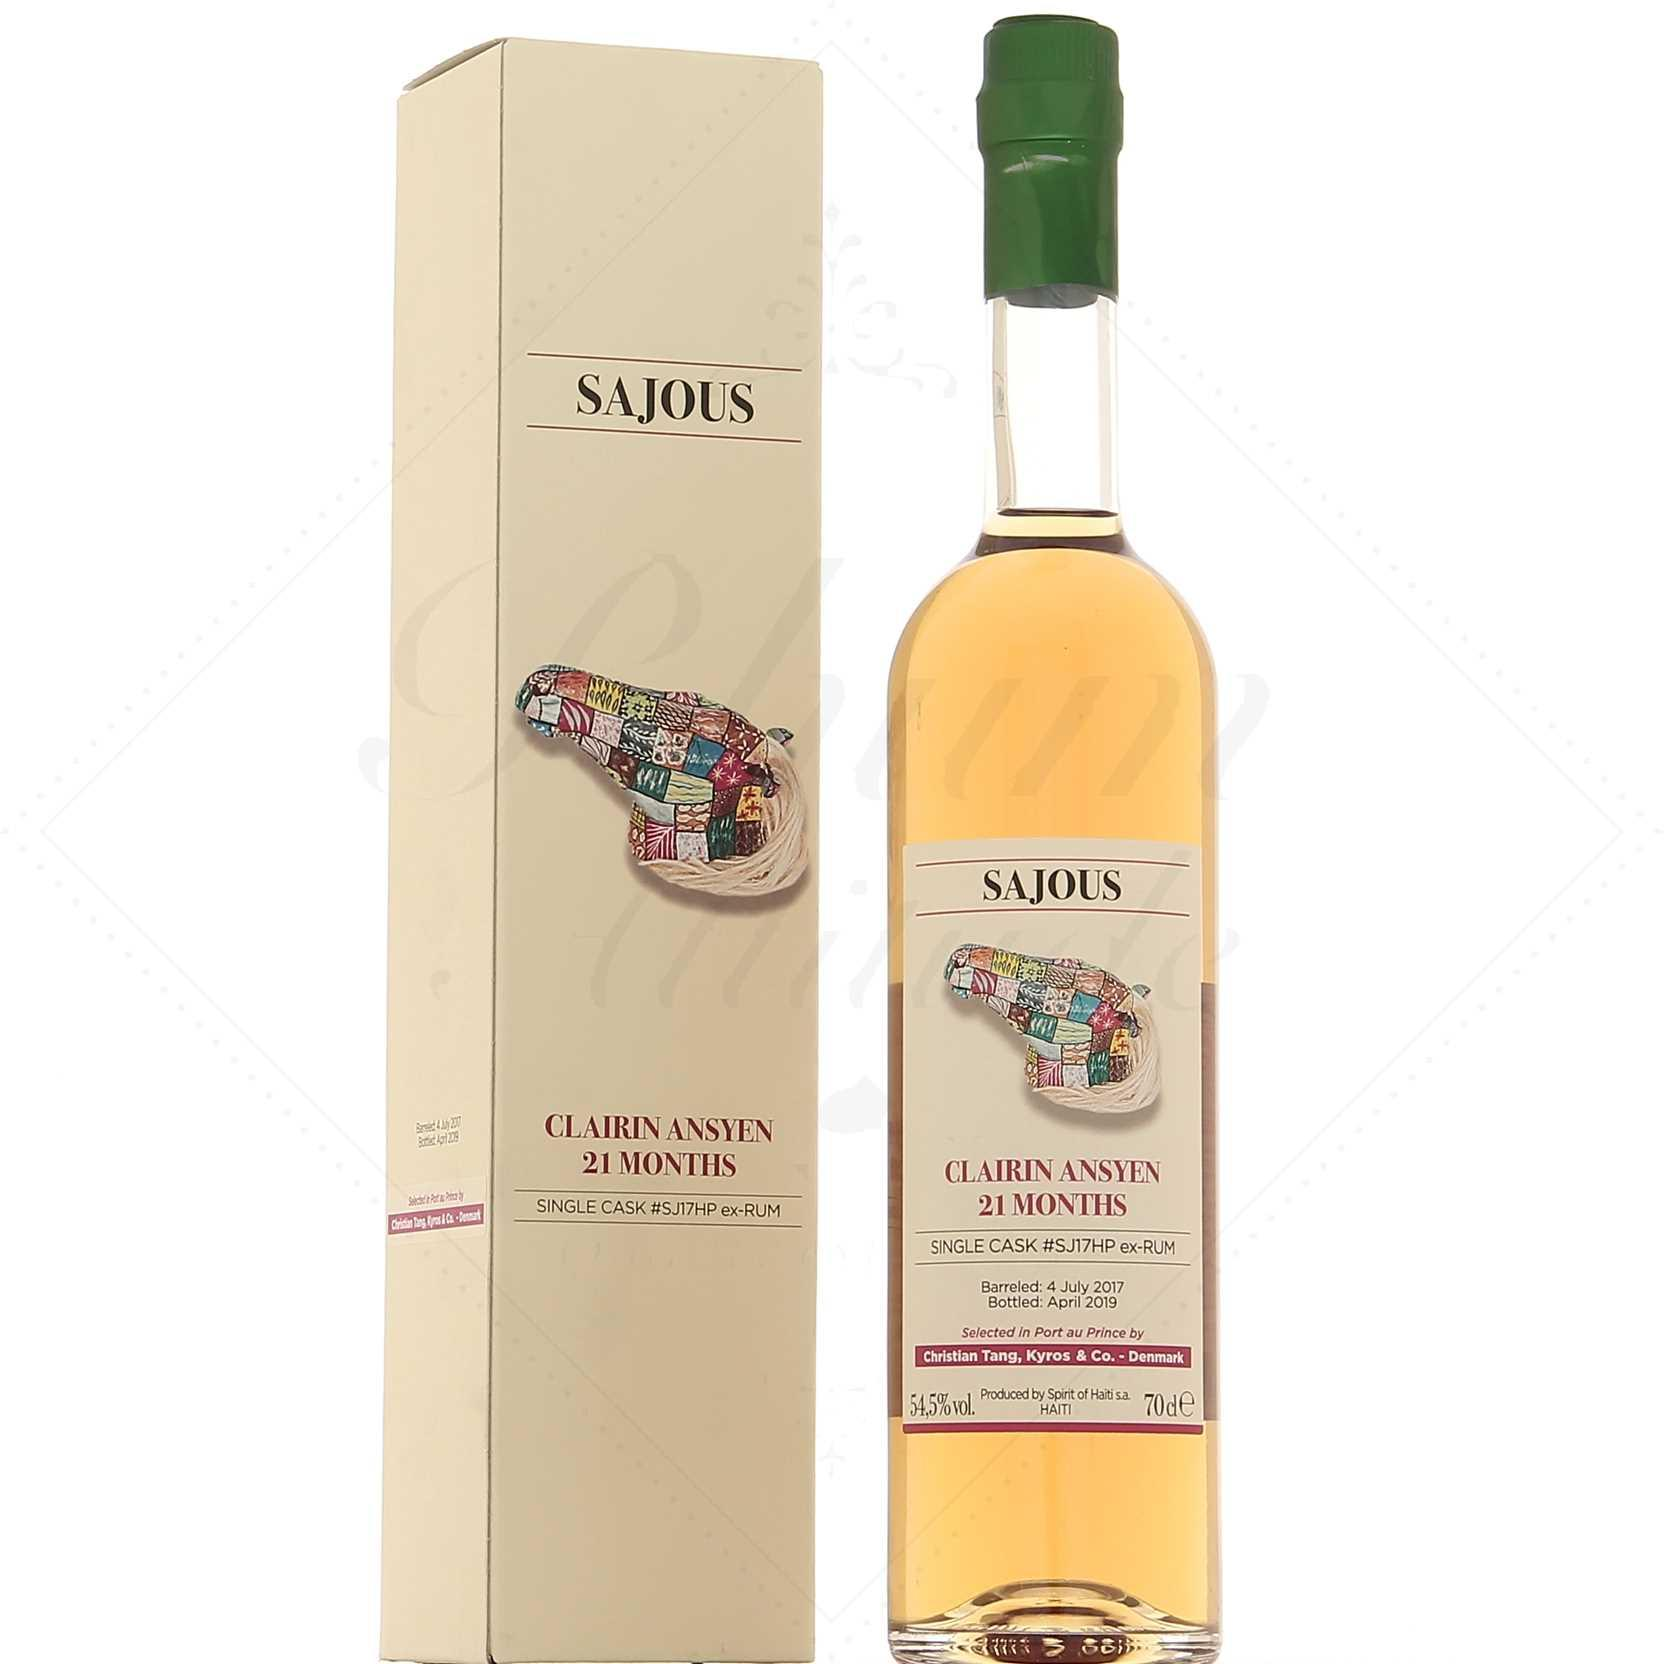 Buy Clairin 21 Mois Ansyen Sajous Fut Sj17hp Price And Reviews At Drinks Co